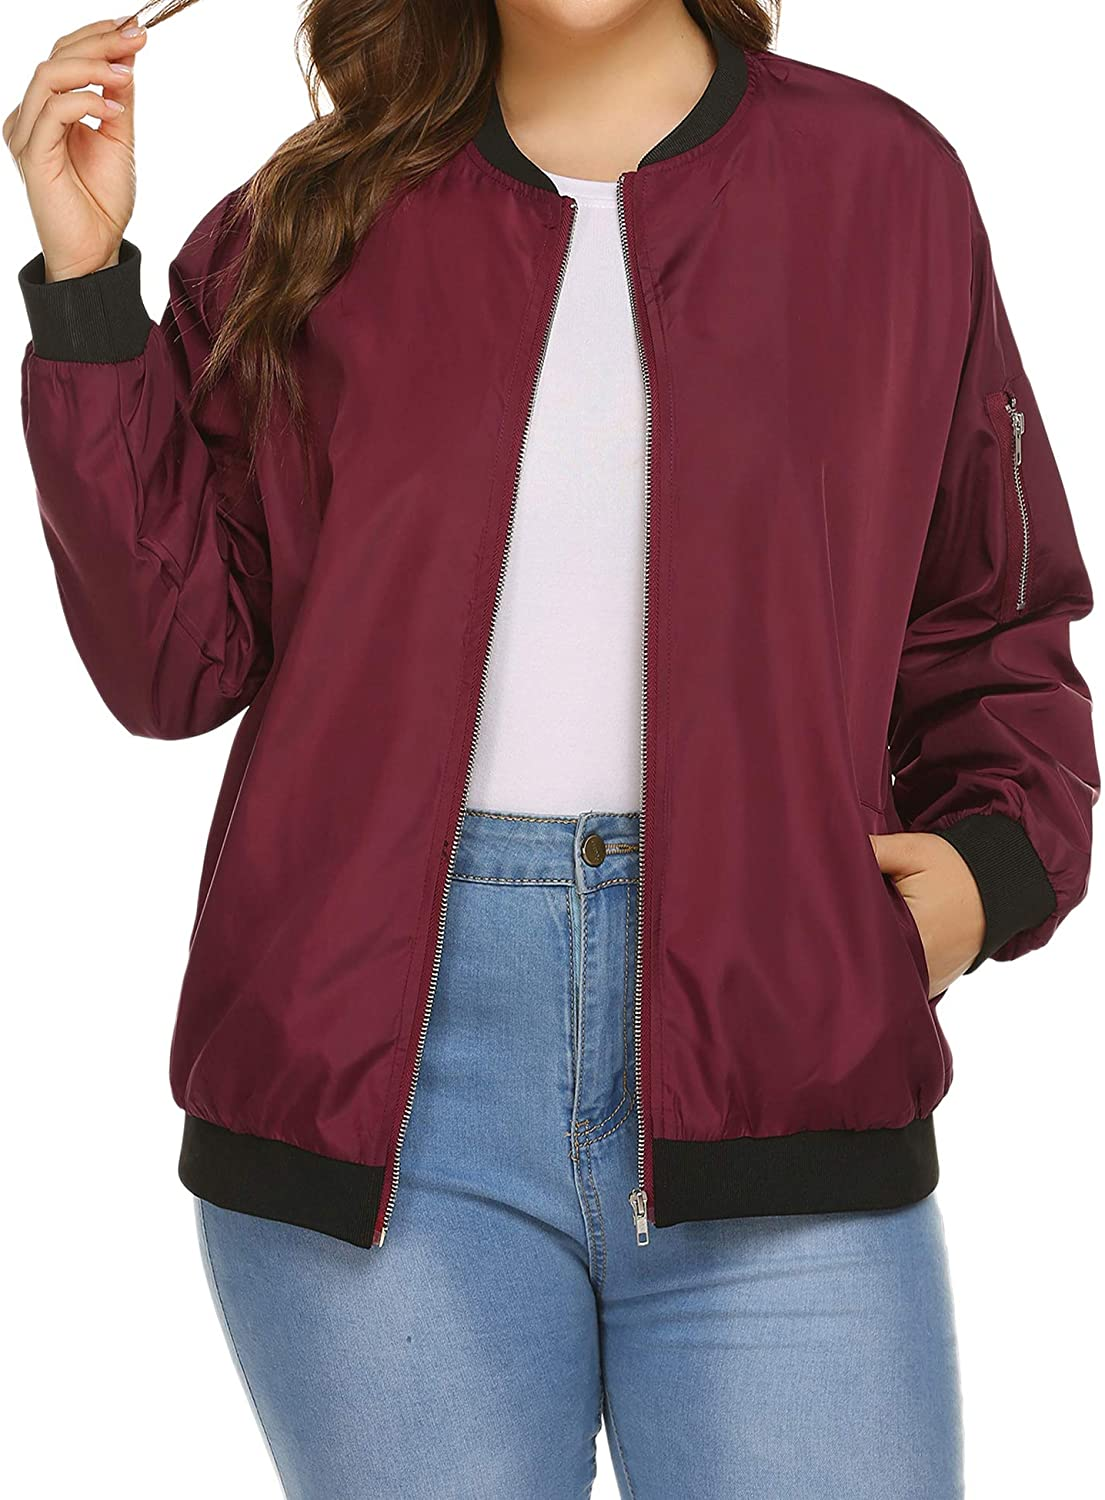 IN'VOLAND Womens Jacket Plus Size Bomber wit Jackets Max 66% OFF Quantity limited Lightweight